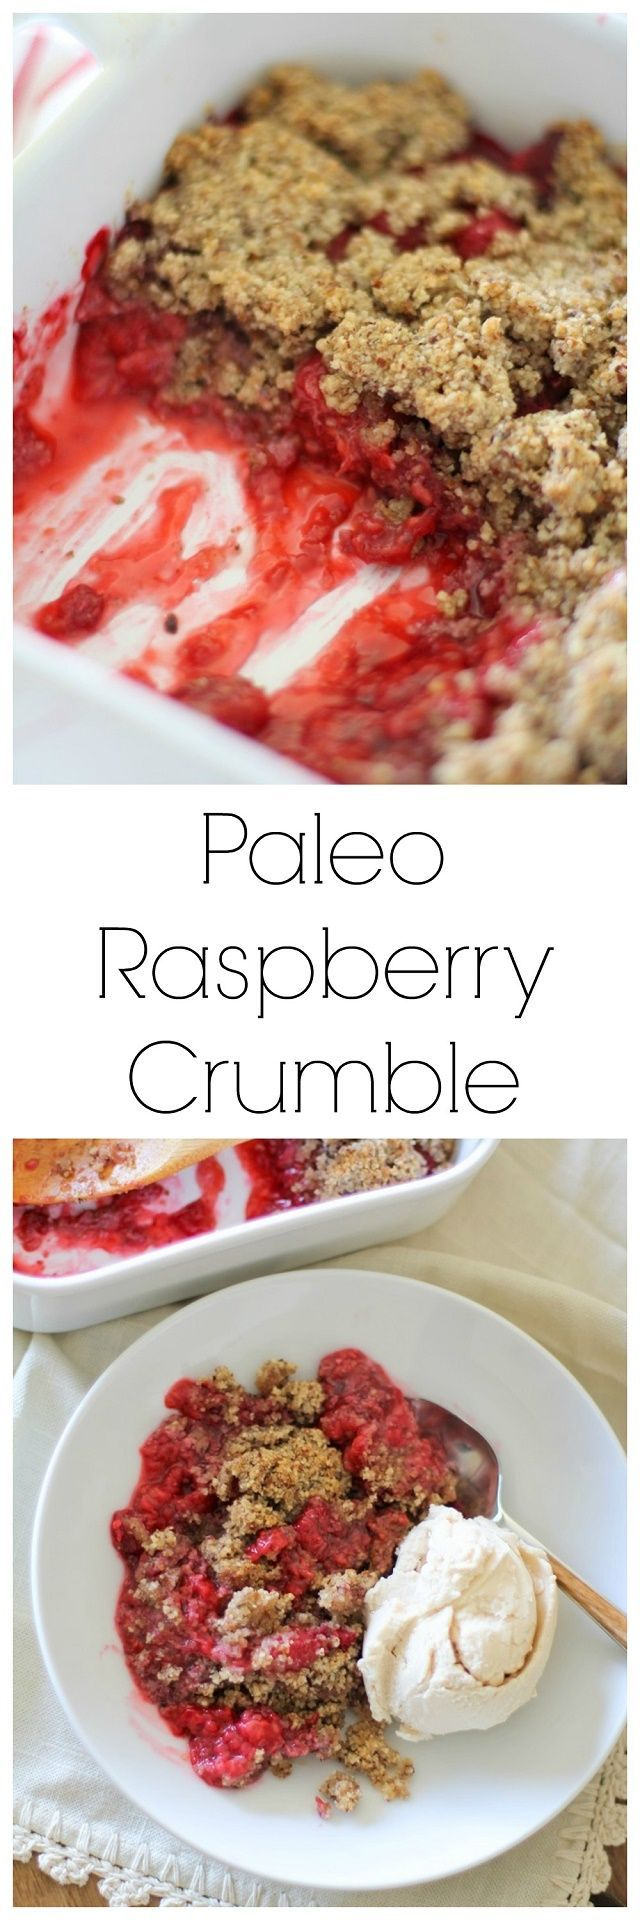 Paleo Raspberry Crumble | a grain-free, naturally sweetened healthy dessert made with hazelnut meal and sweetened with pure maple syrup. Eat it for breakfast! | theroastedroot.net #glutenfree #sugarfree #dessert #breakfast #recipe #paleo #healthy @bobsredmill @roastedroot